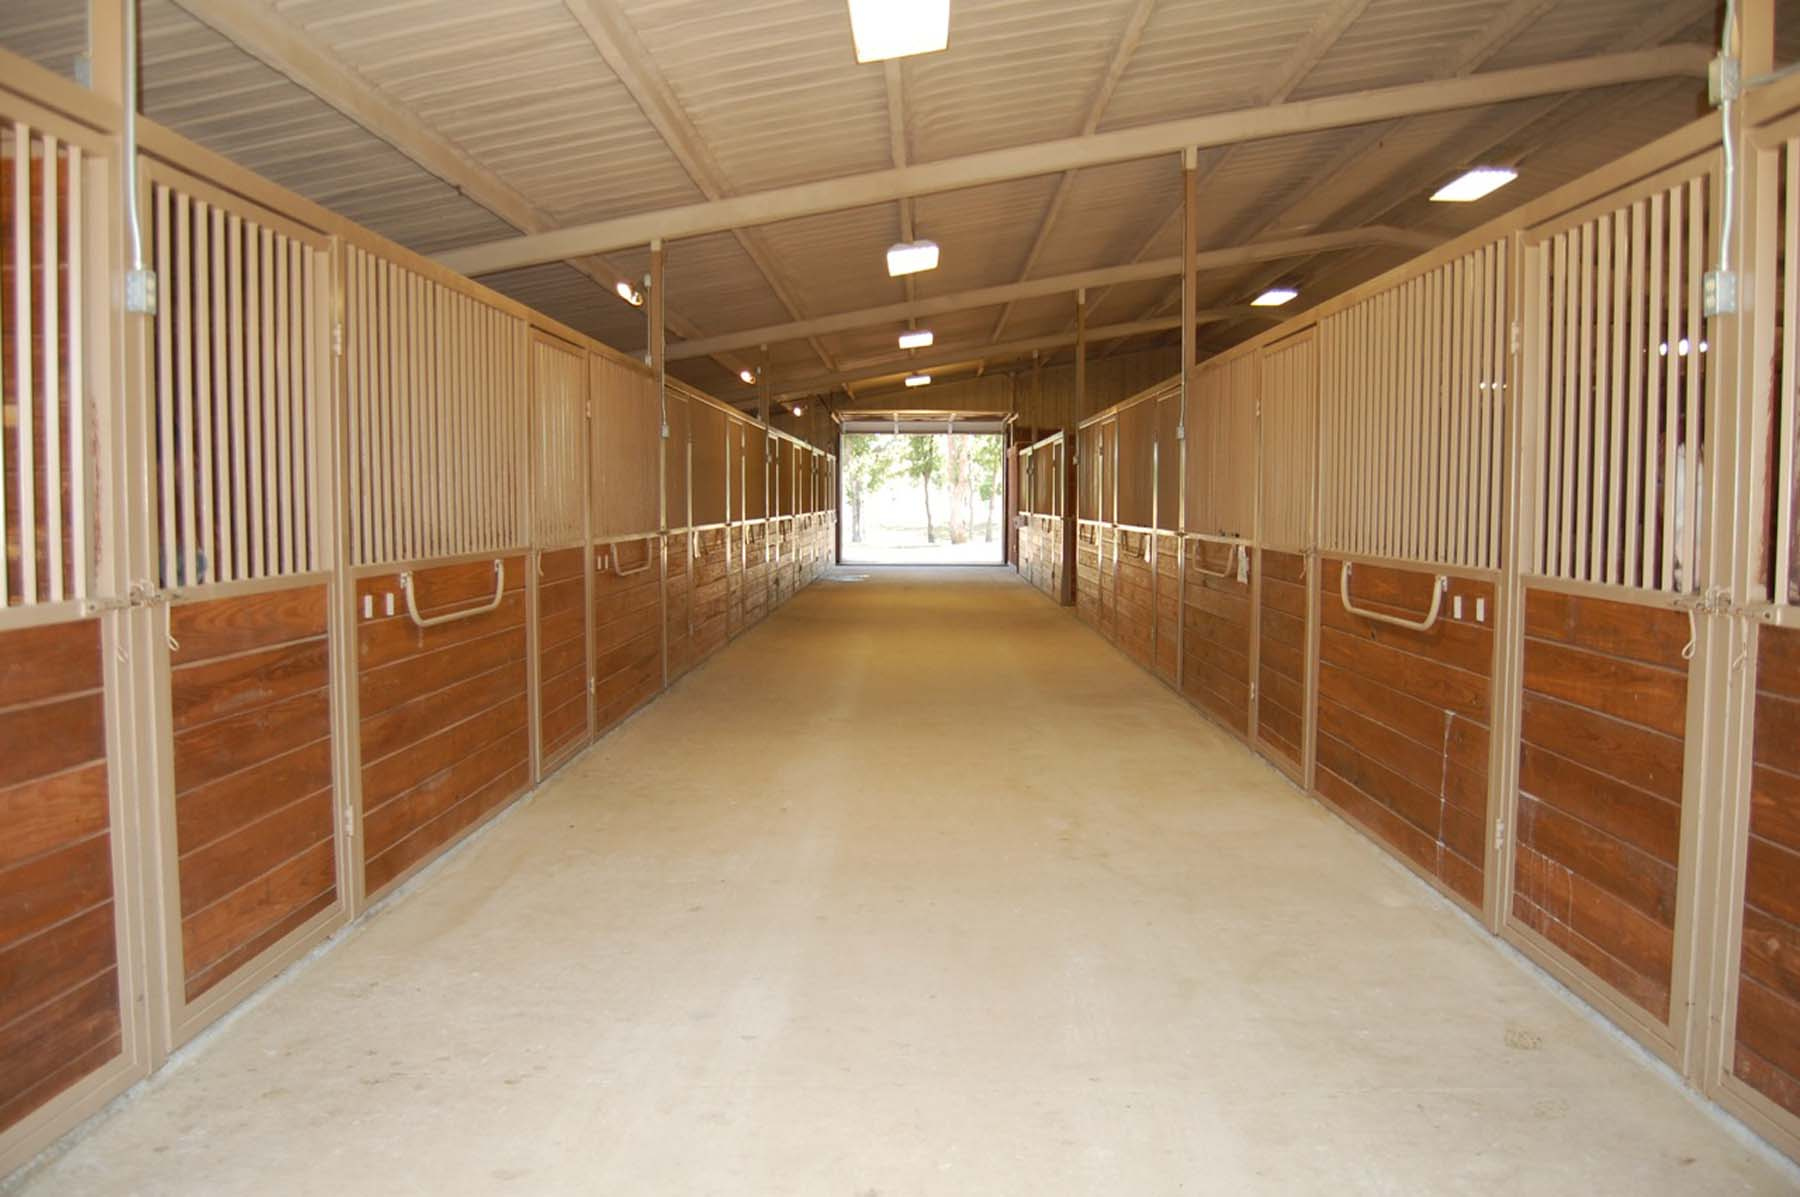 Larson Show Barn with 54 Stalls